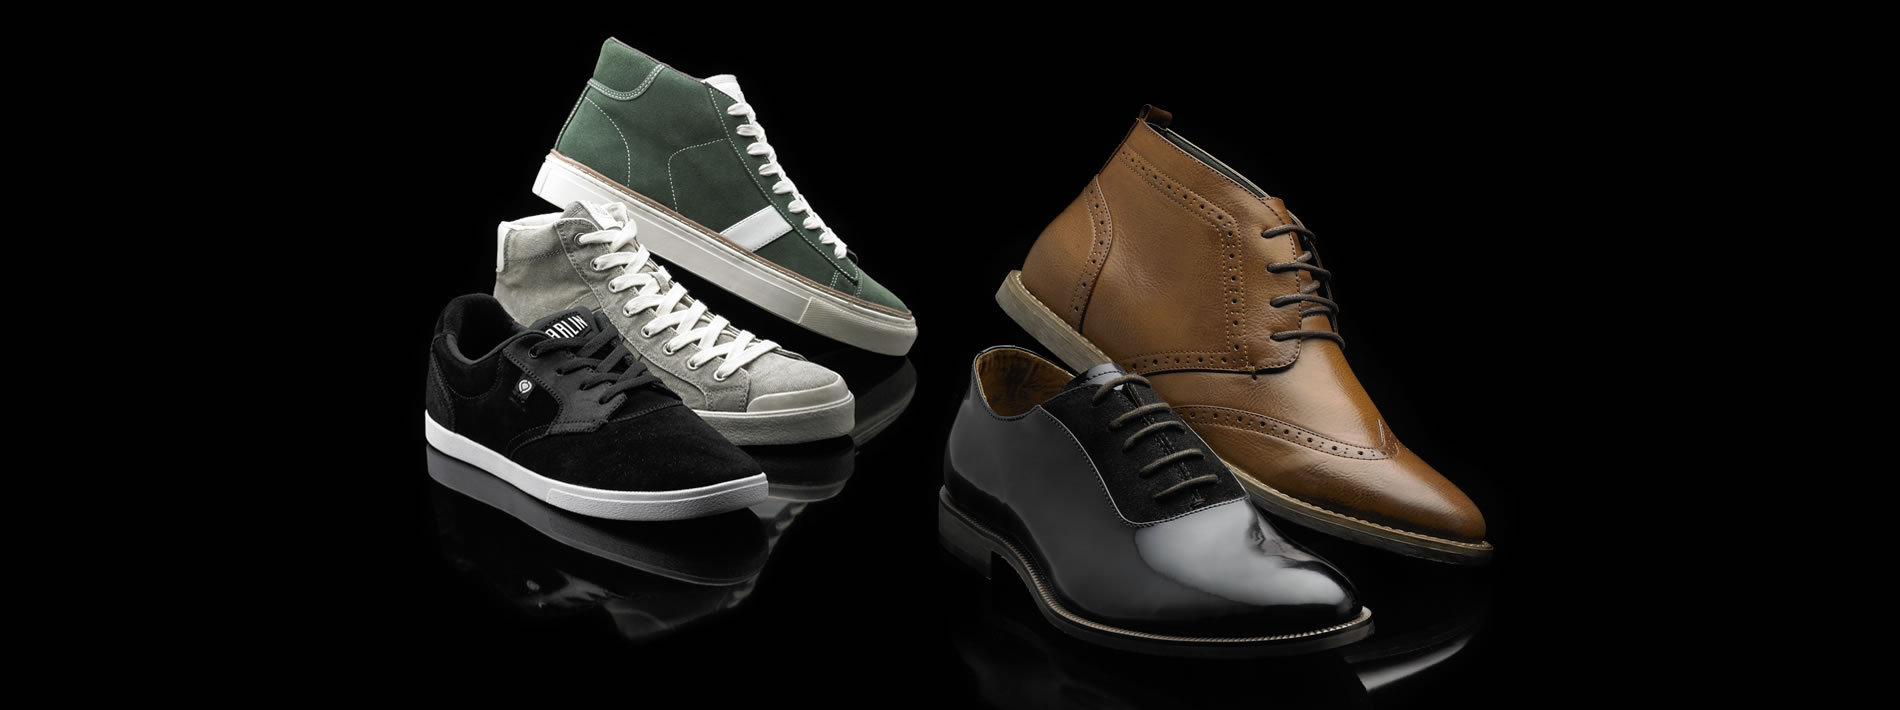 2014: over 11 million pairs produced